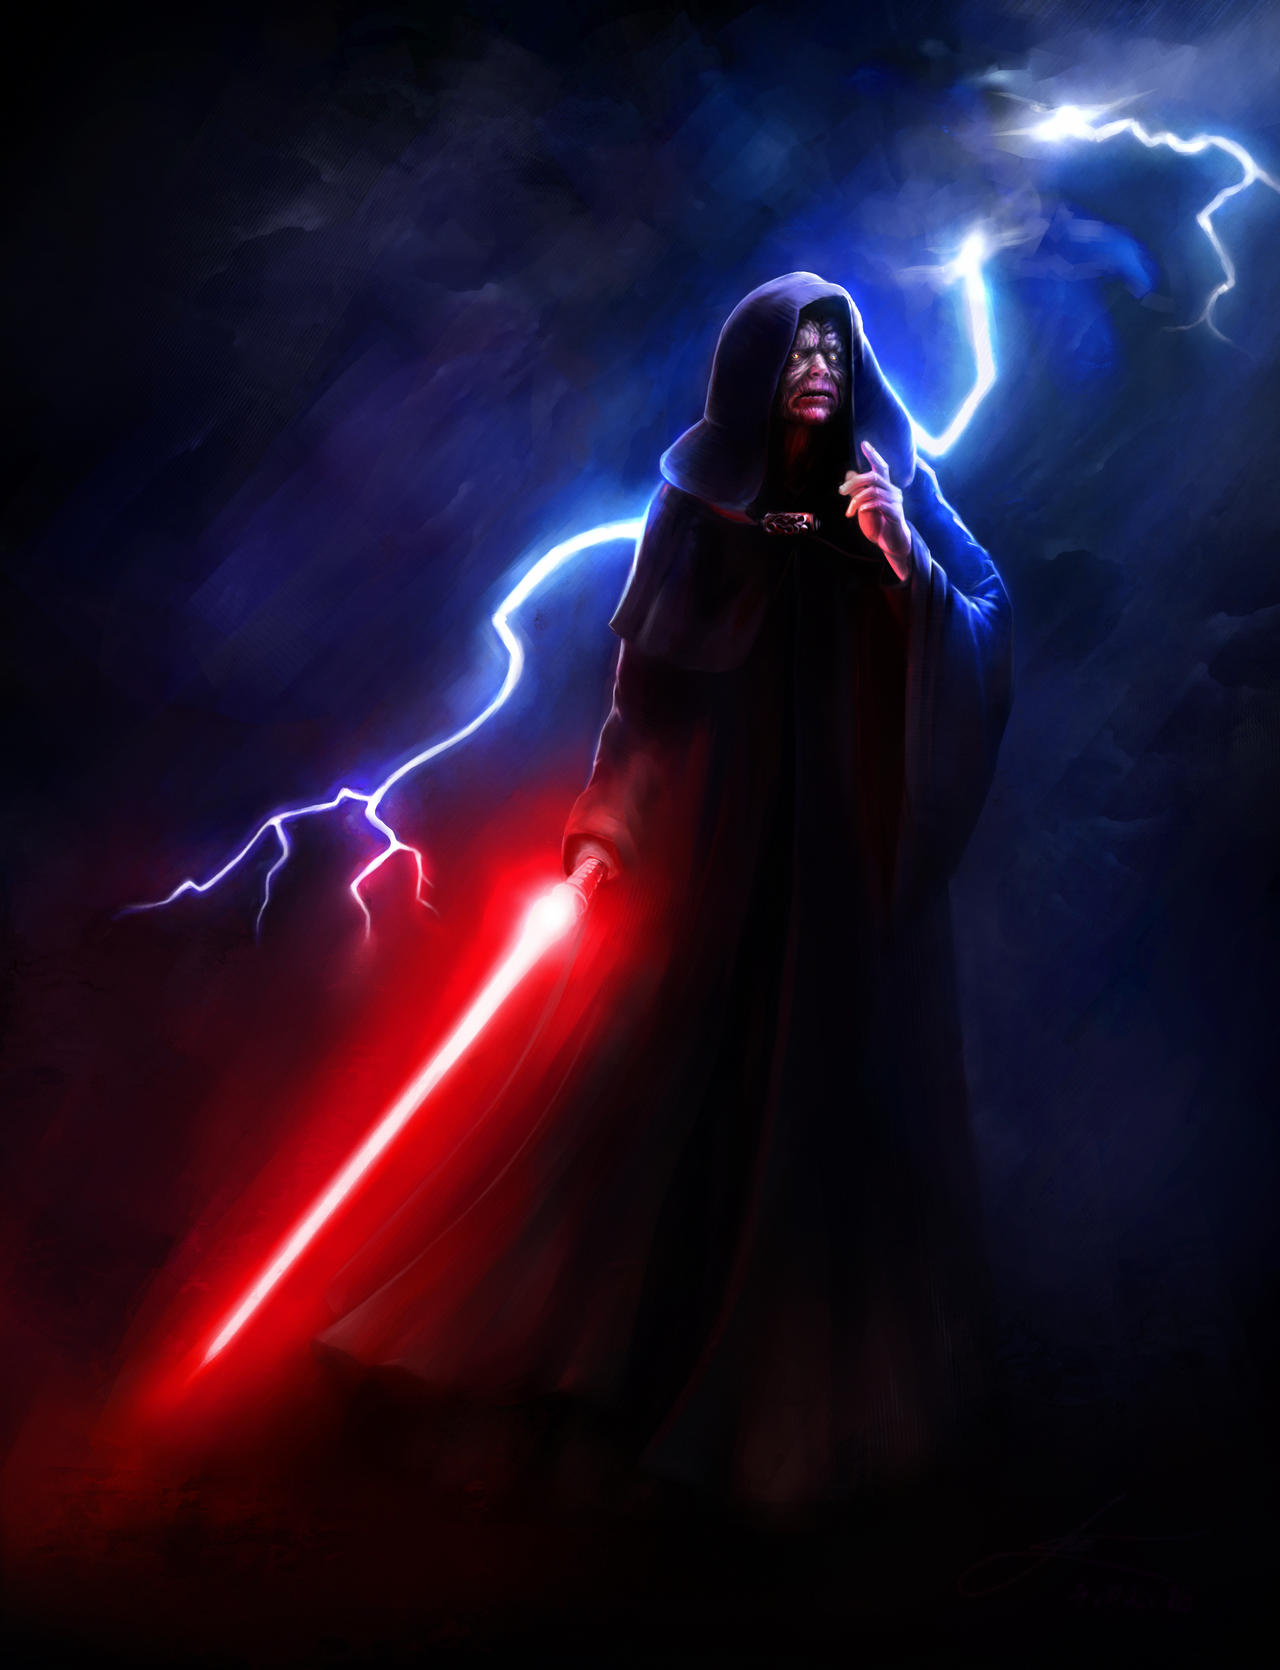 darth sidious sith star wars